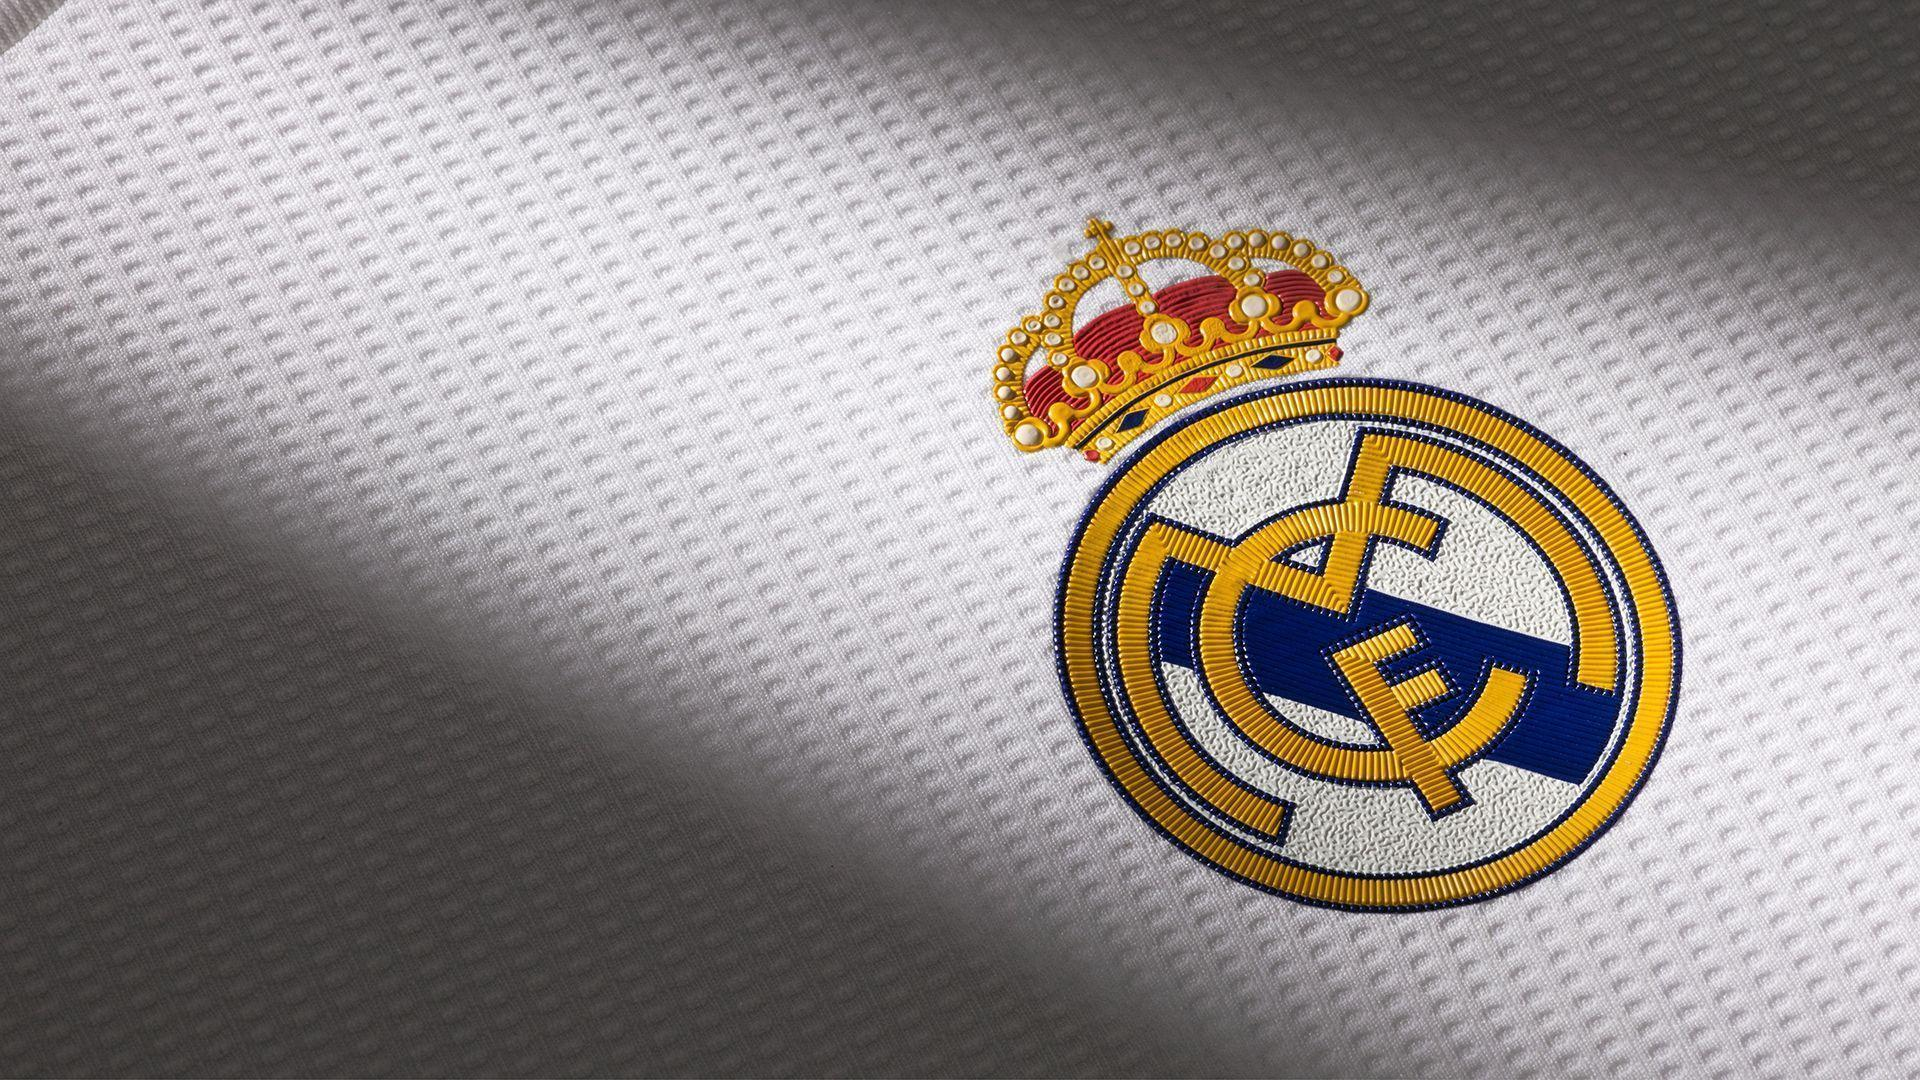 Real madrid 2016 wallpapers 3d wallpaper cave real madrid logo wallpaper hd 2016 wallpapers backgrounds voltagebd Gallery